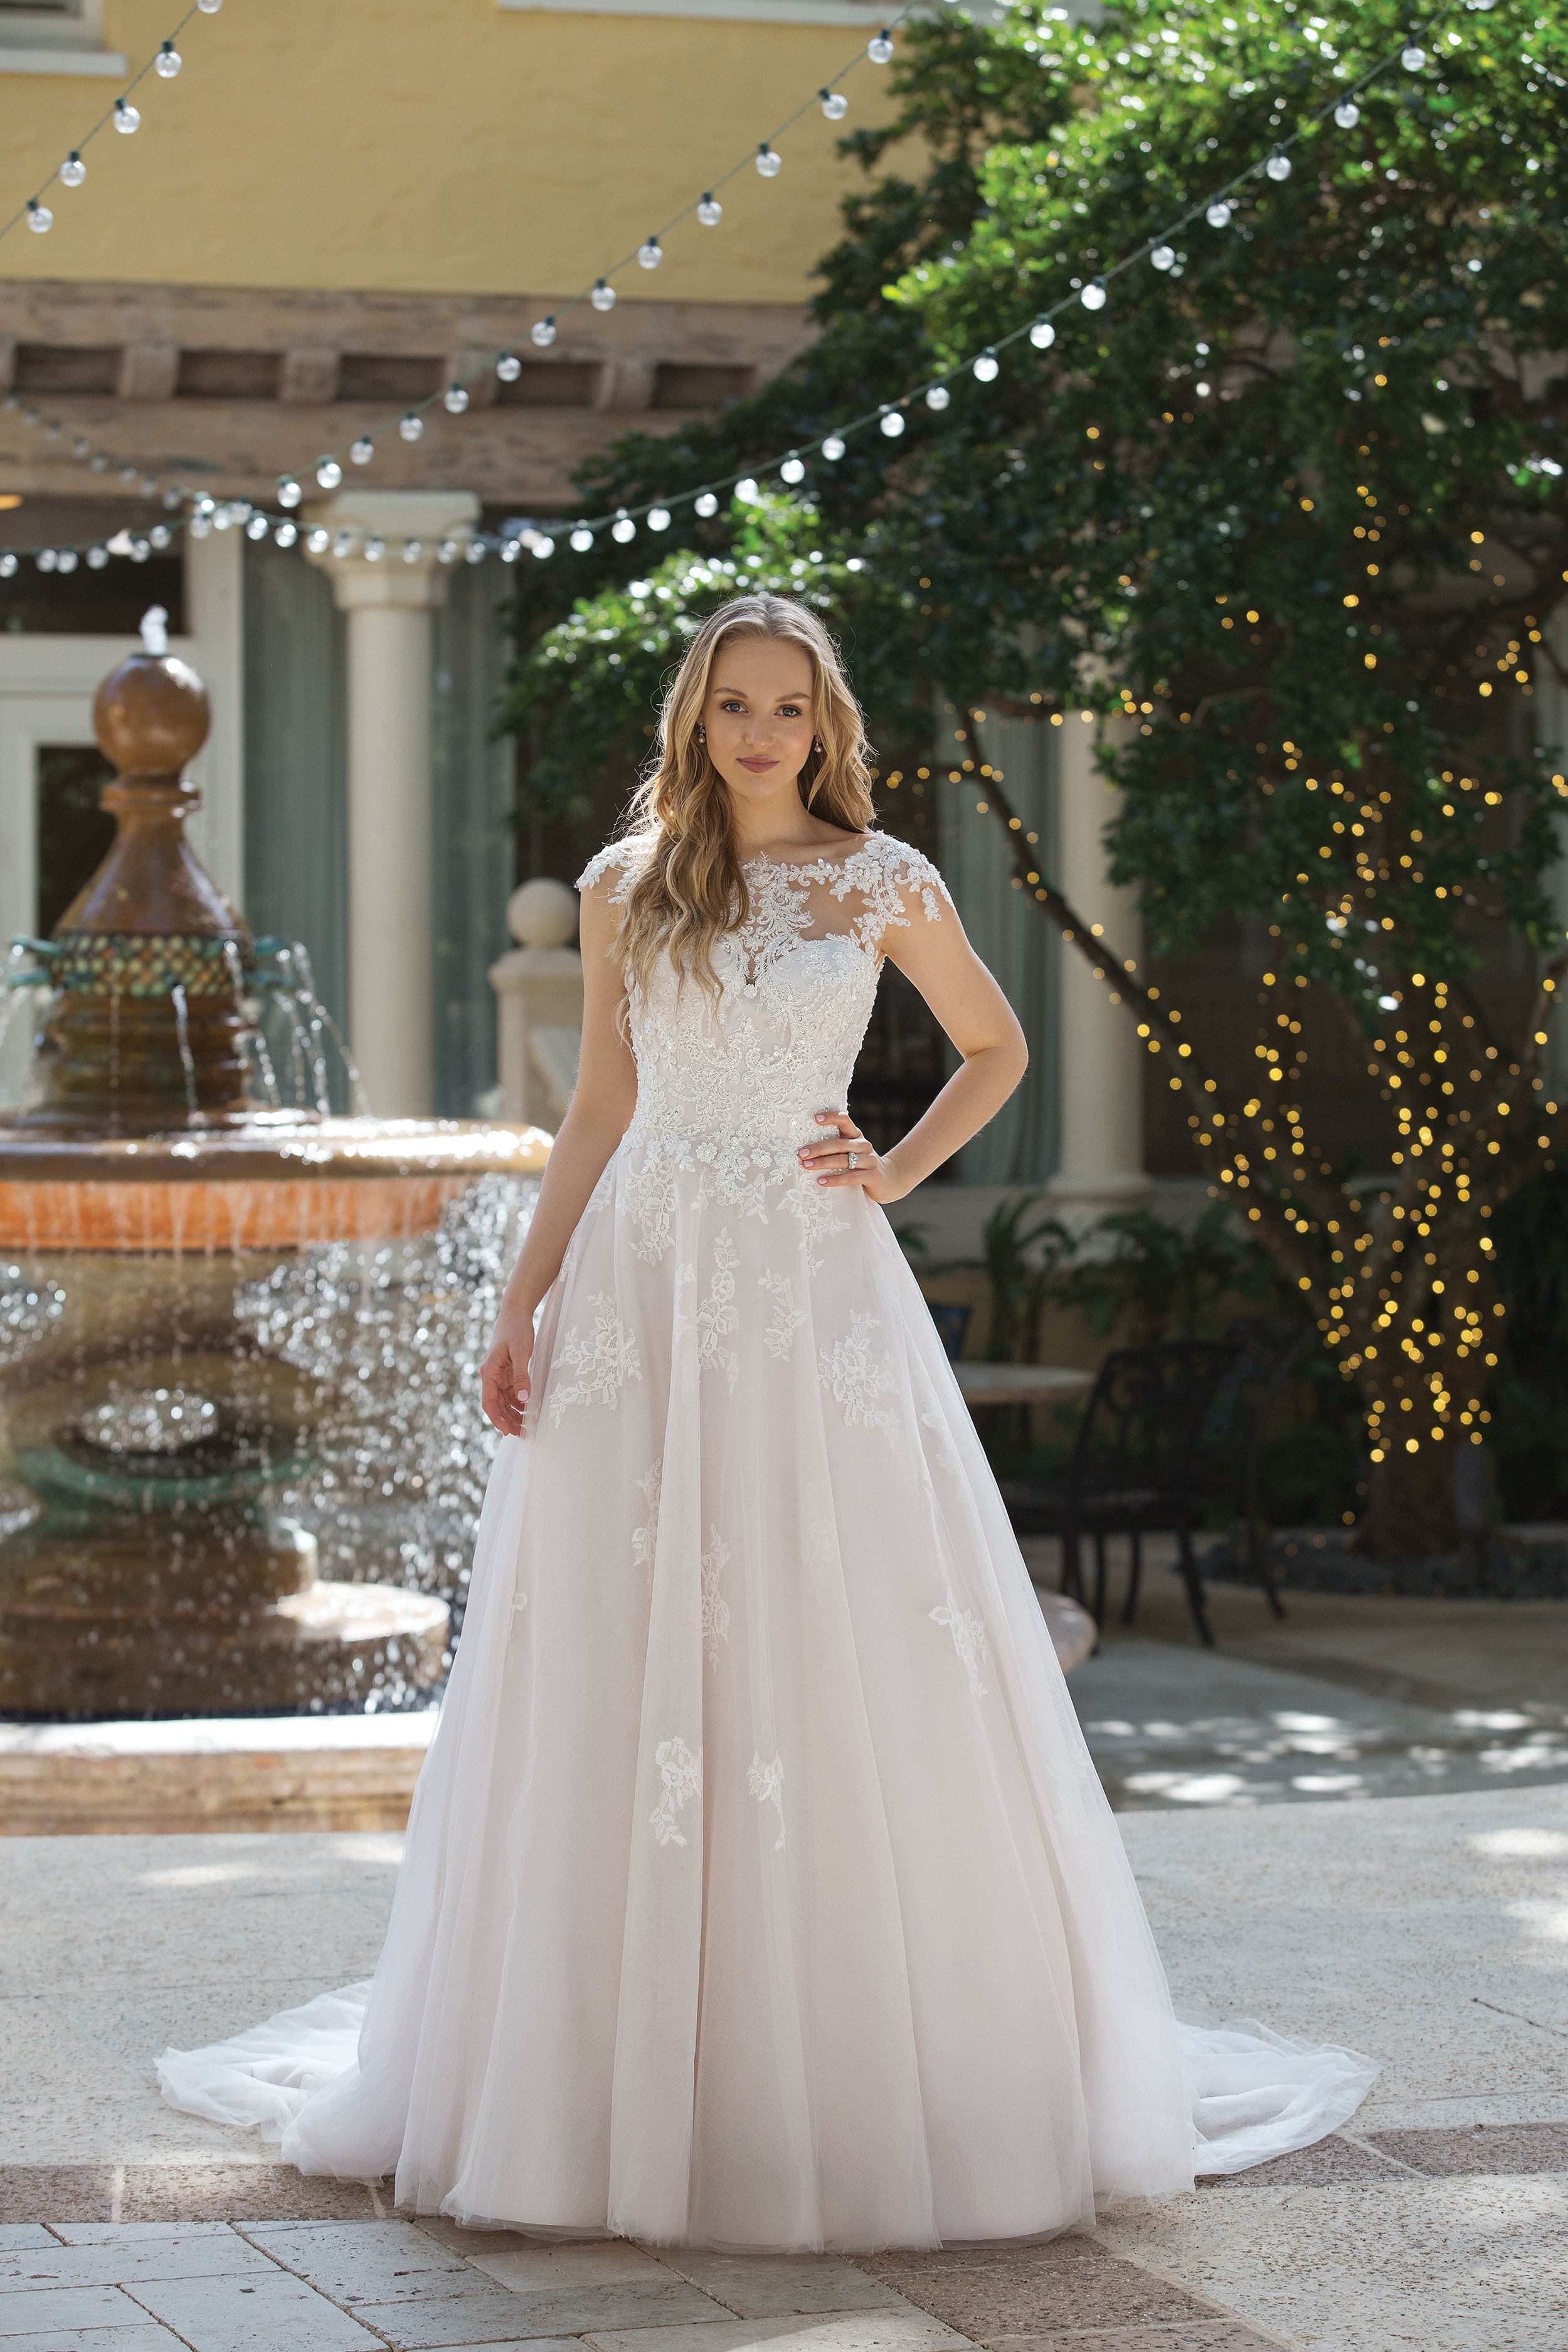 Be A Princess On A Budget Justin Alexander,Indian Style Indian Wedding Guest Dresses For Girls